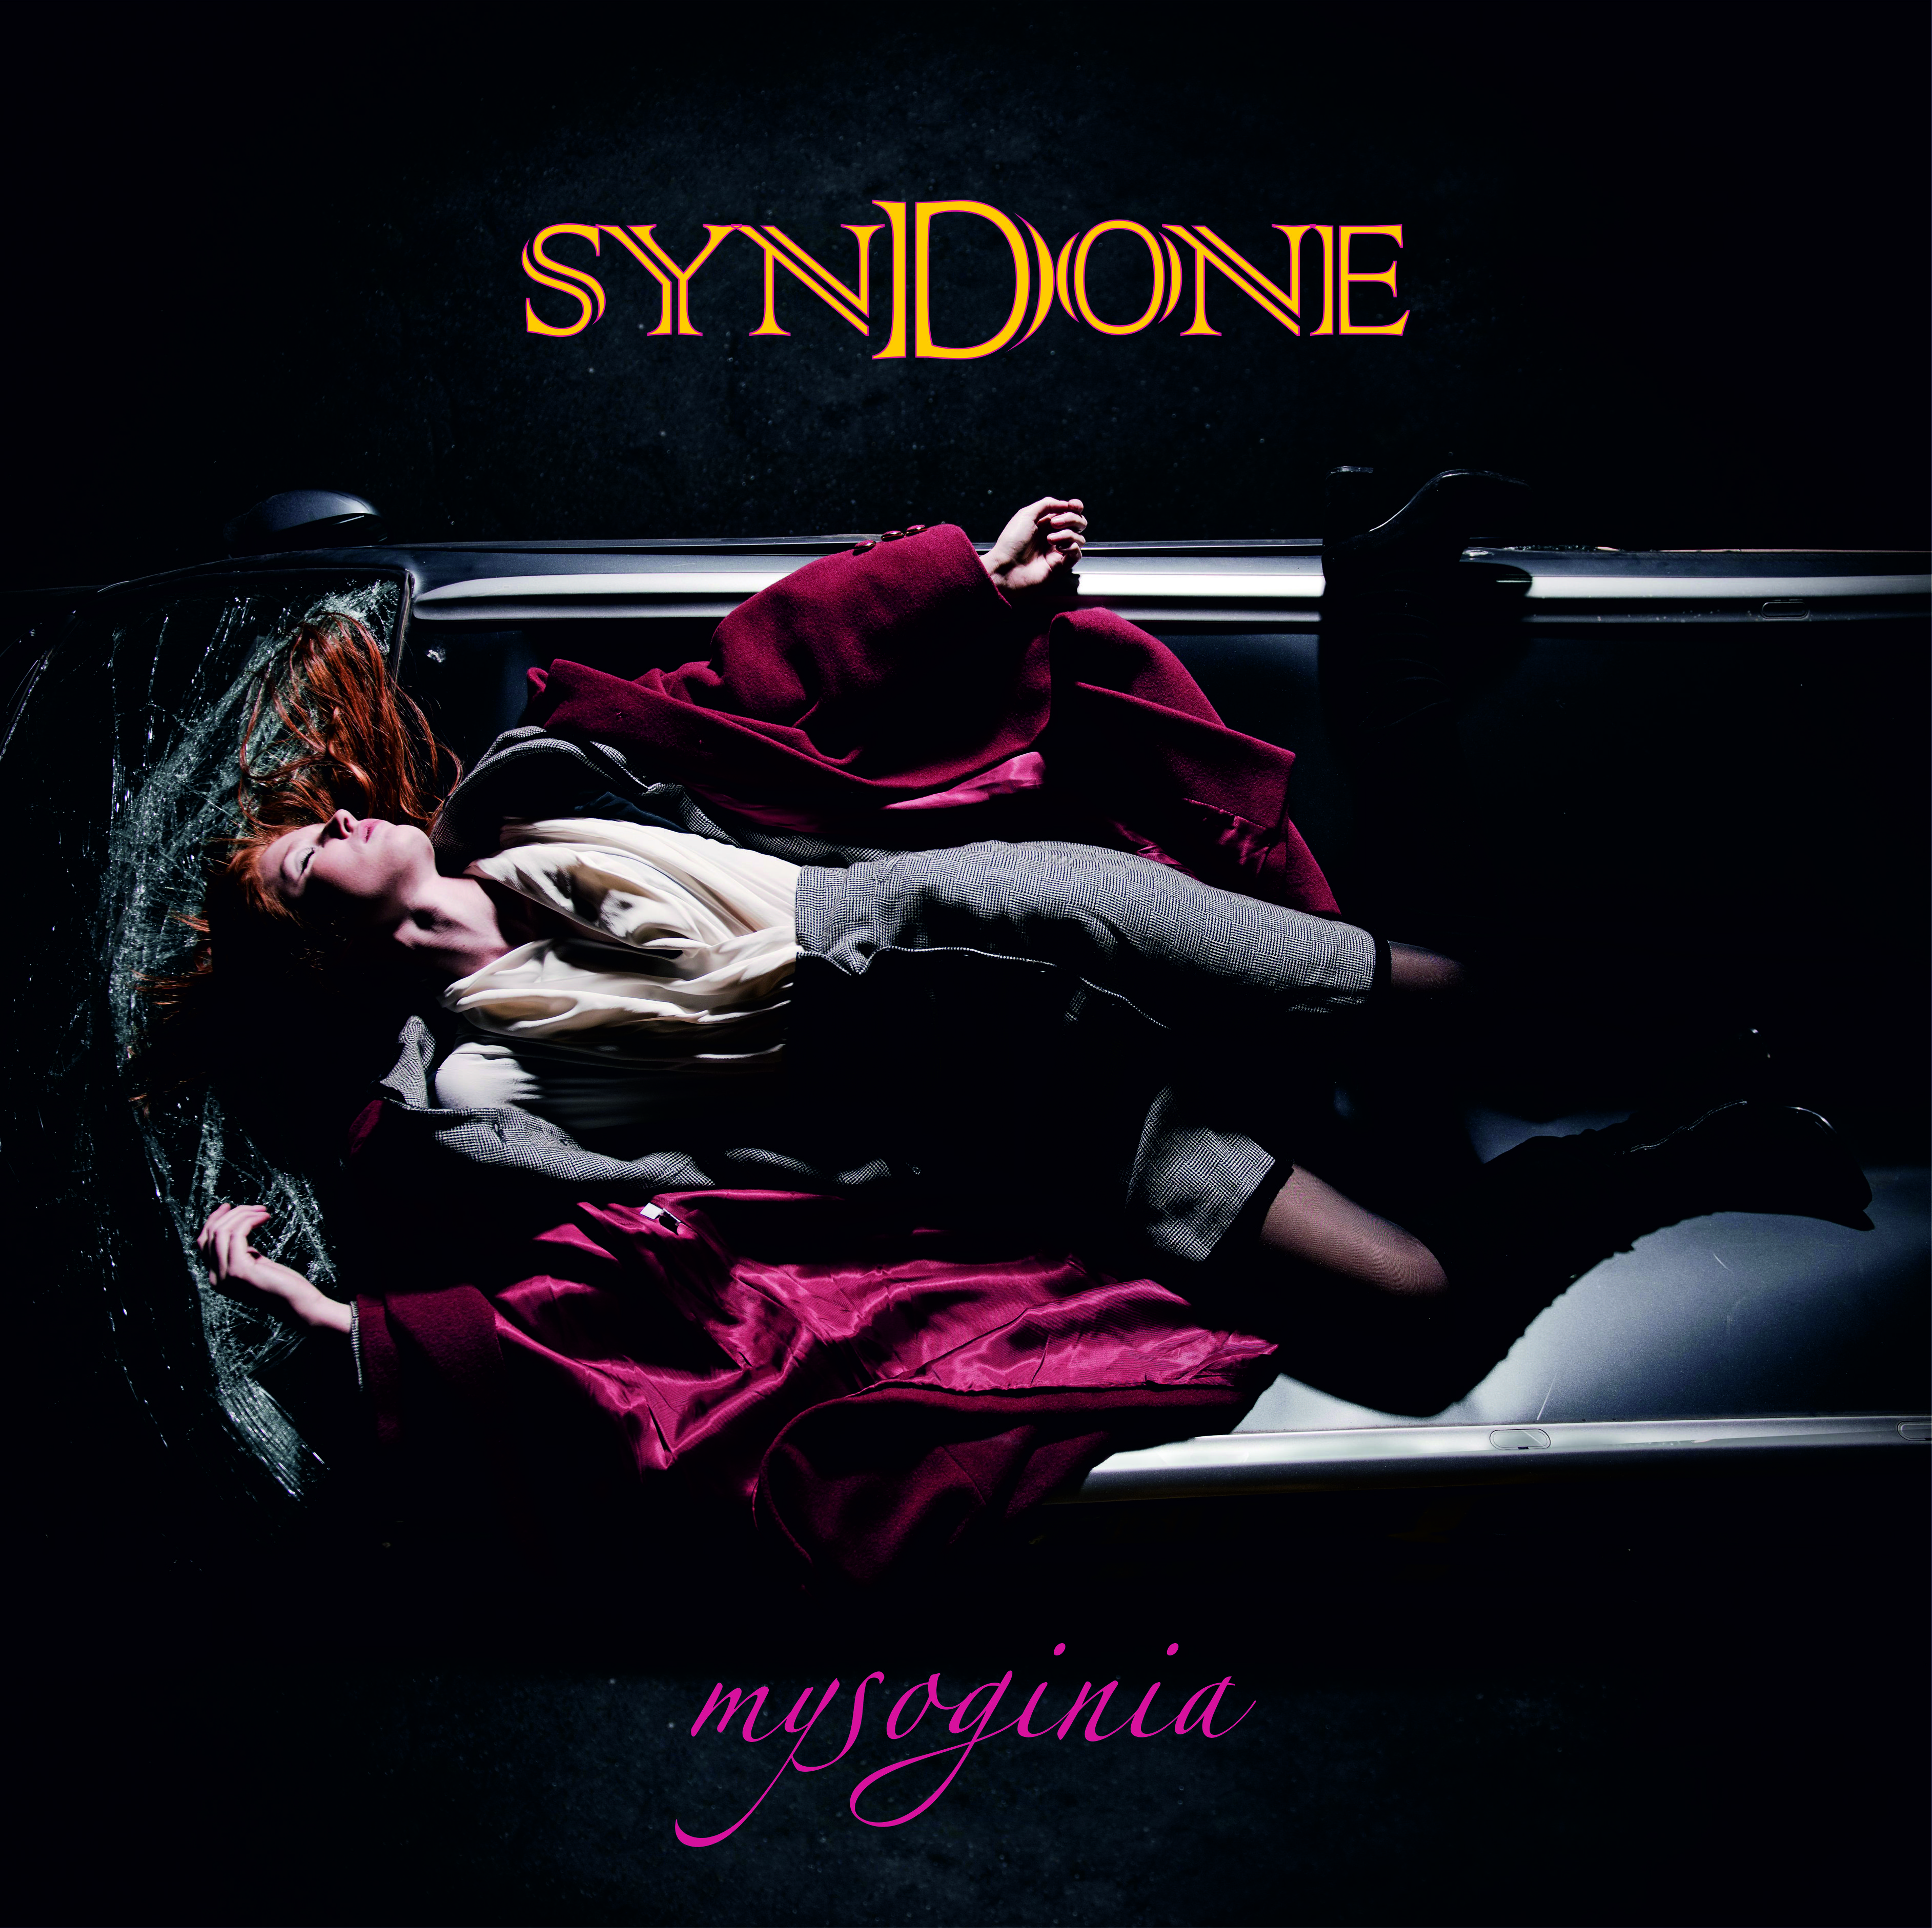 SYNDONE - Mysoginia  CD Digipack